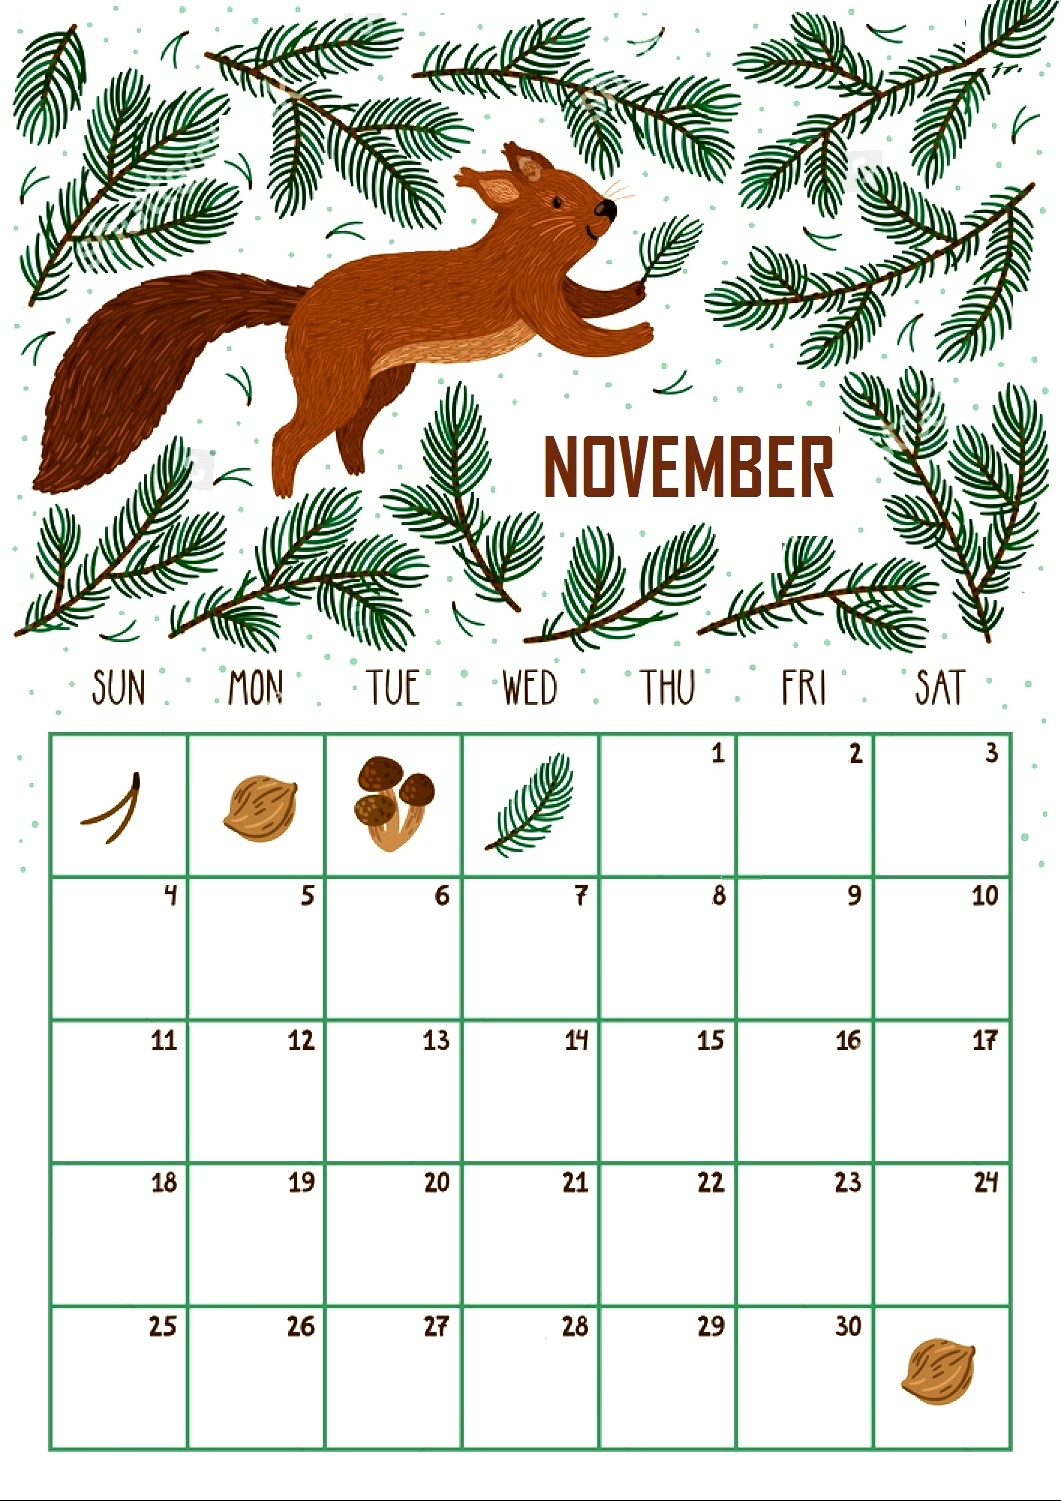 november 2018 archives picture pictures printable template Editable November 2018 Calendar erdferdf